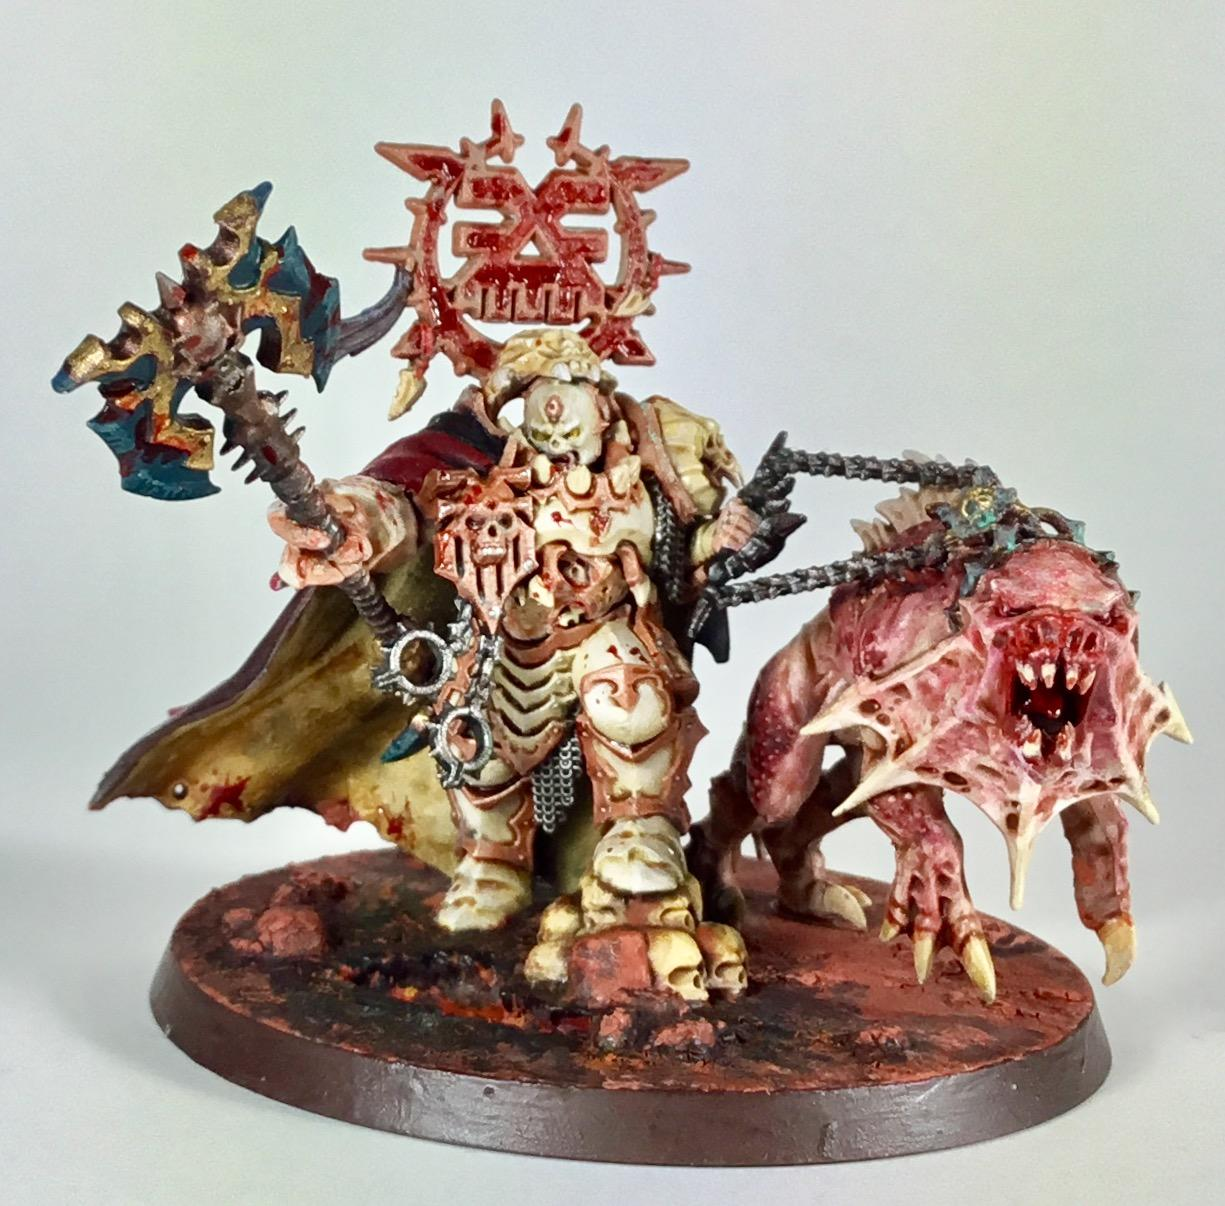 Age Of Sigmar, Age Of Sigmas, Blood, Bloodbound, Chaos, Conversion, God, Hero, Hound, Khorne, Lord, Mighty, Proxy, Red